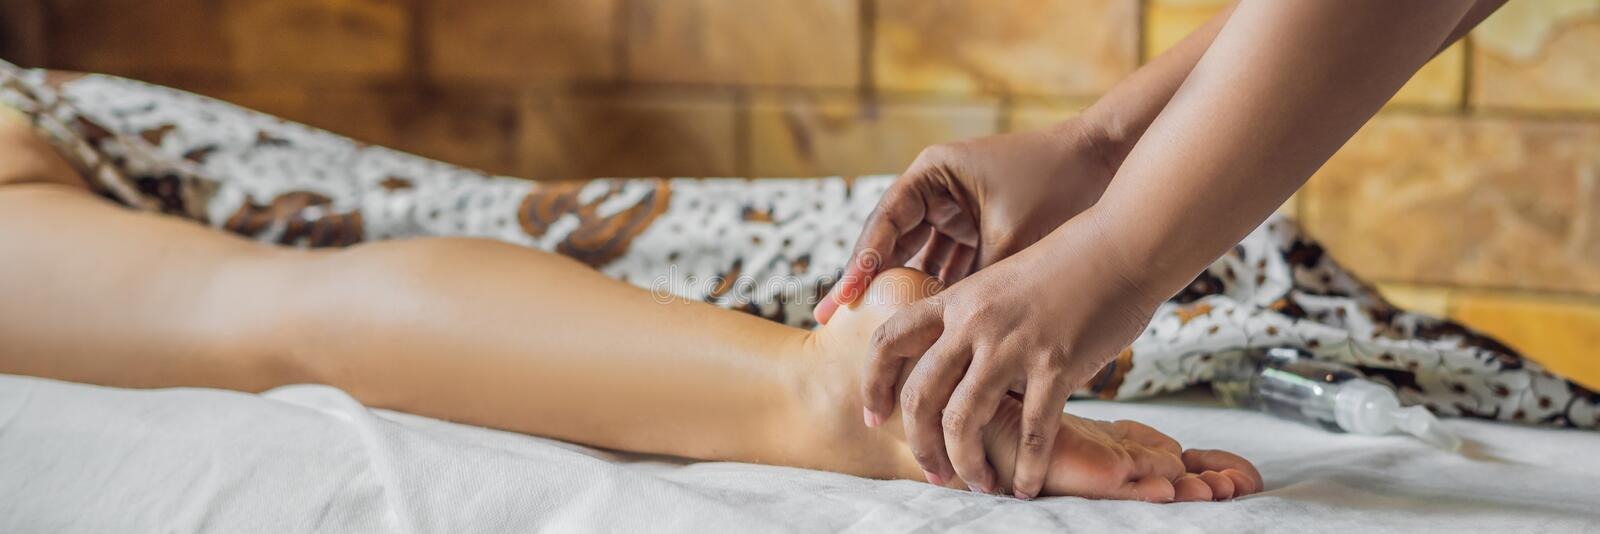 Total relaxation. Beautiful Young Wwoman Get Balinese or Thai Massage BANNER, LONG FORMAT. Total relaxation. Beautiful Young Wwoman Get Balinese or Thai Massage royalty free stock photo